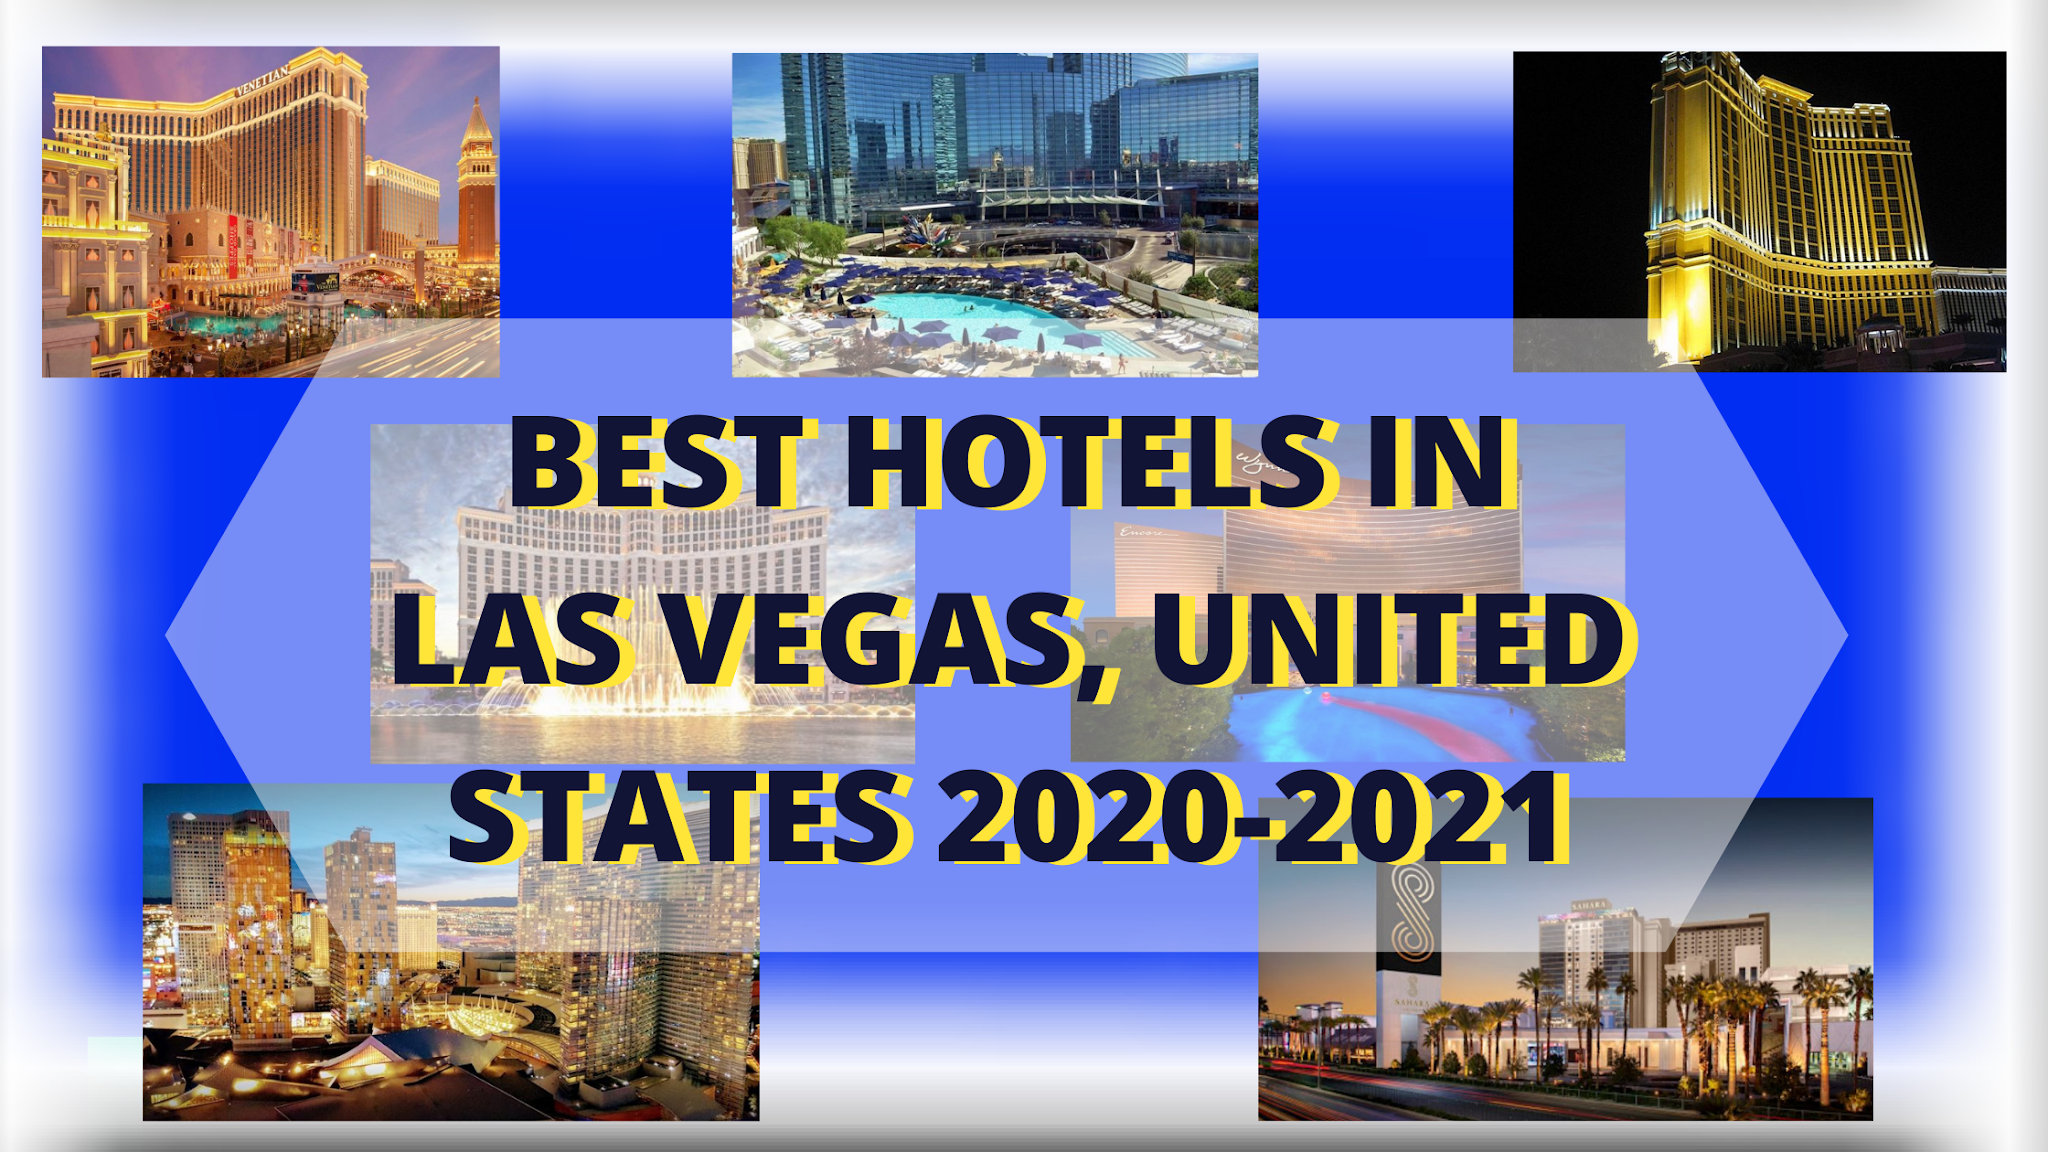 Best Hotels in Las Vegas, USA 2021